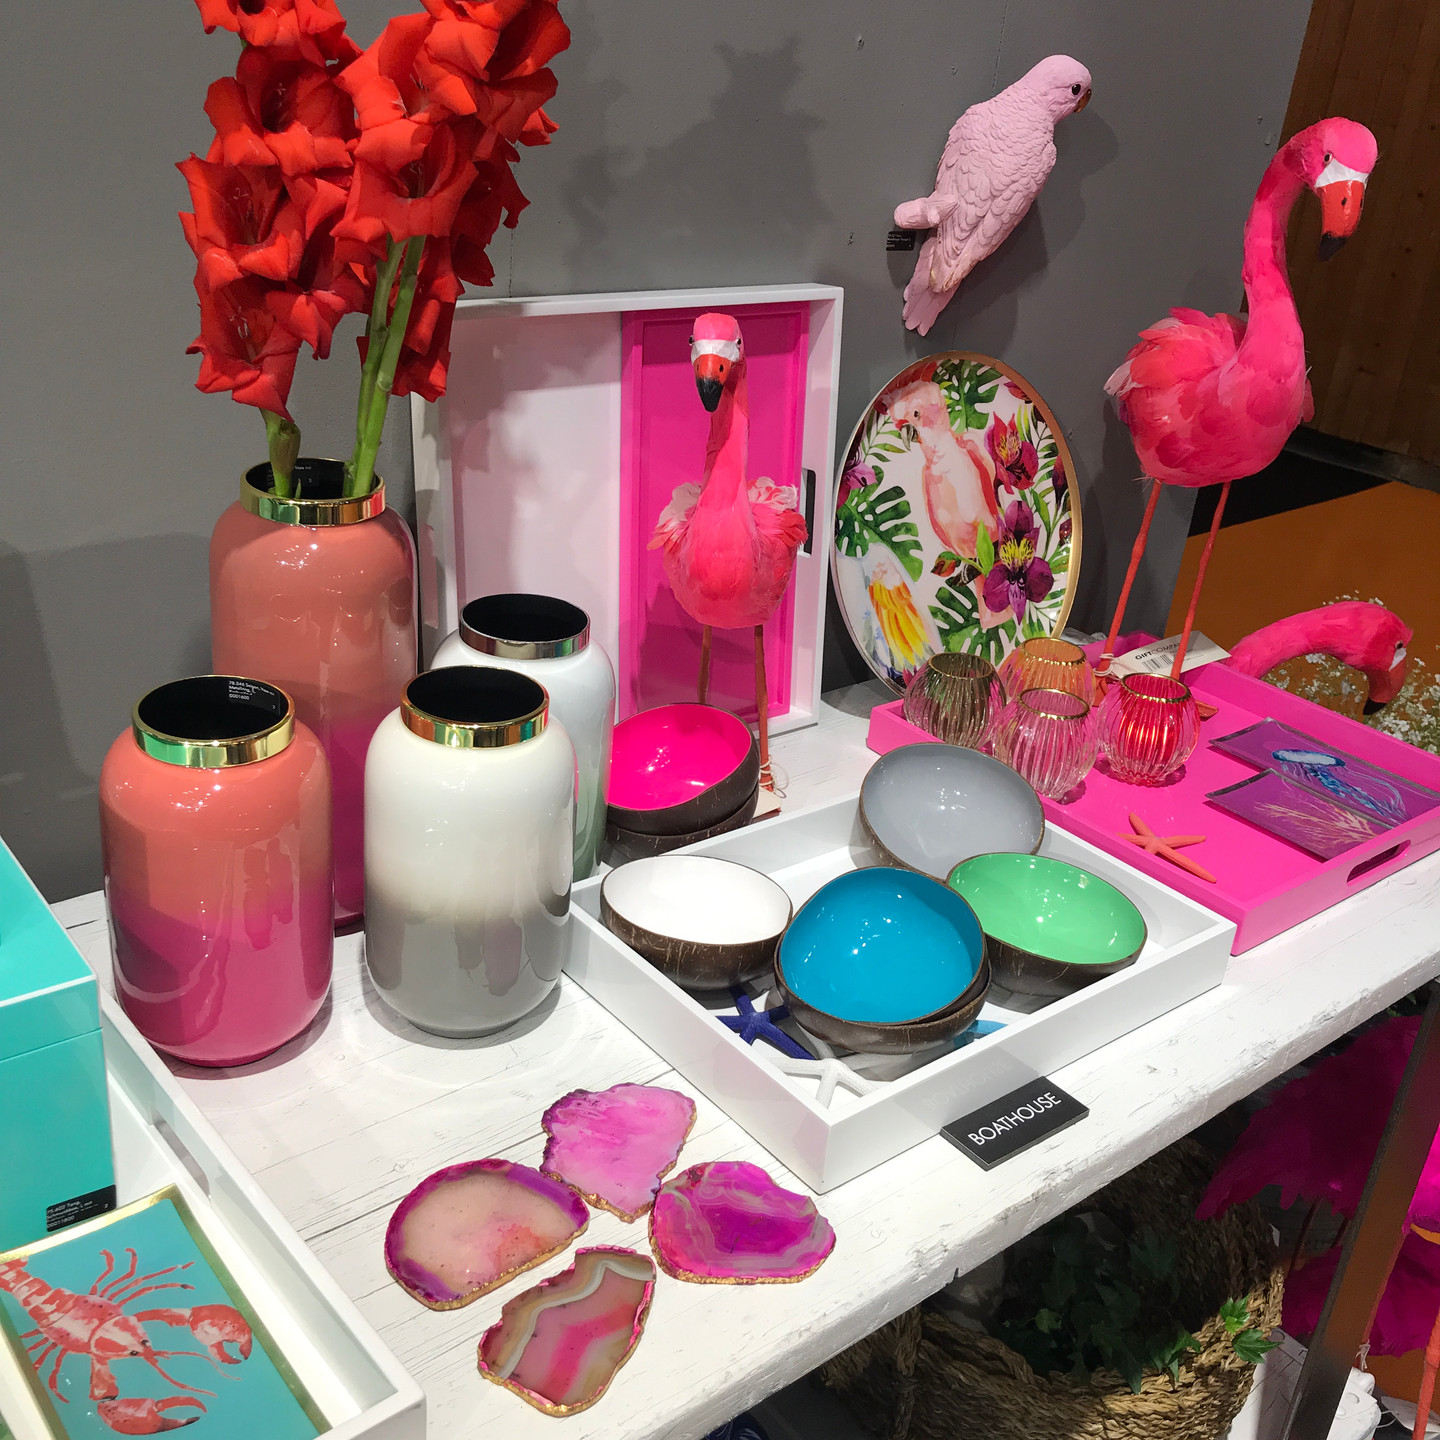 Neon Home Accessories Display with Flamingos, Trays, Bowls, and Vases